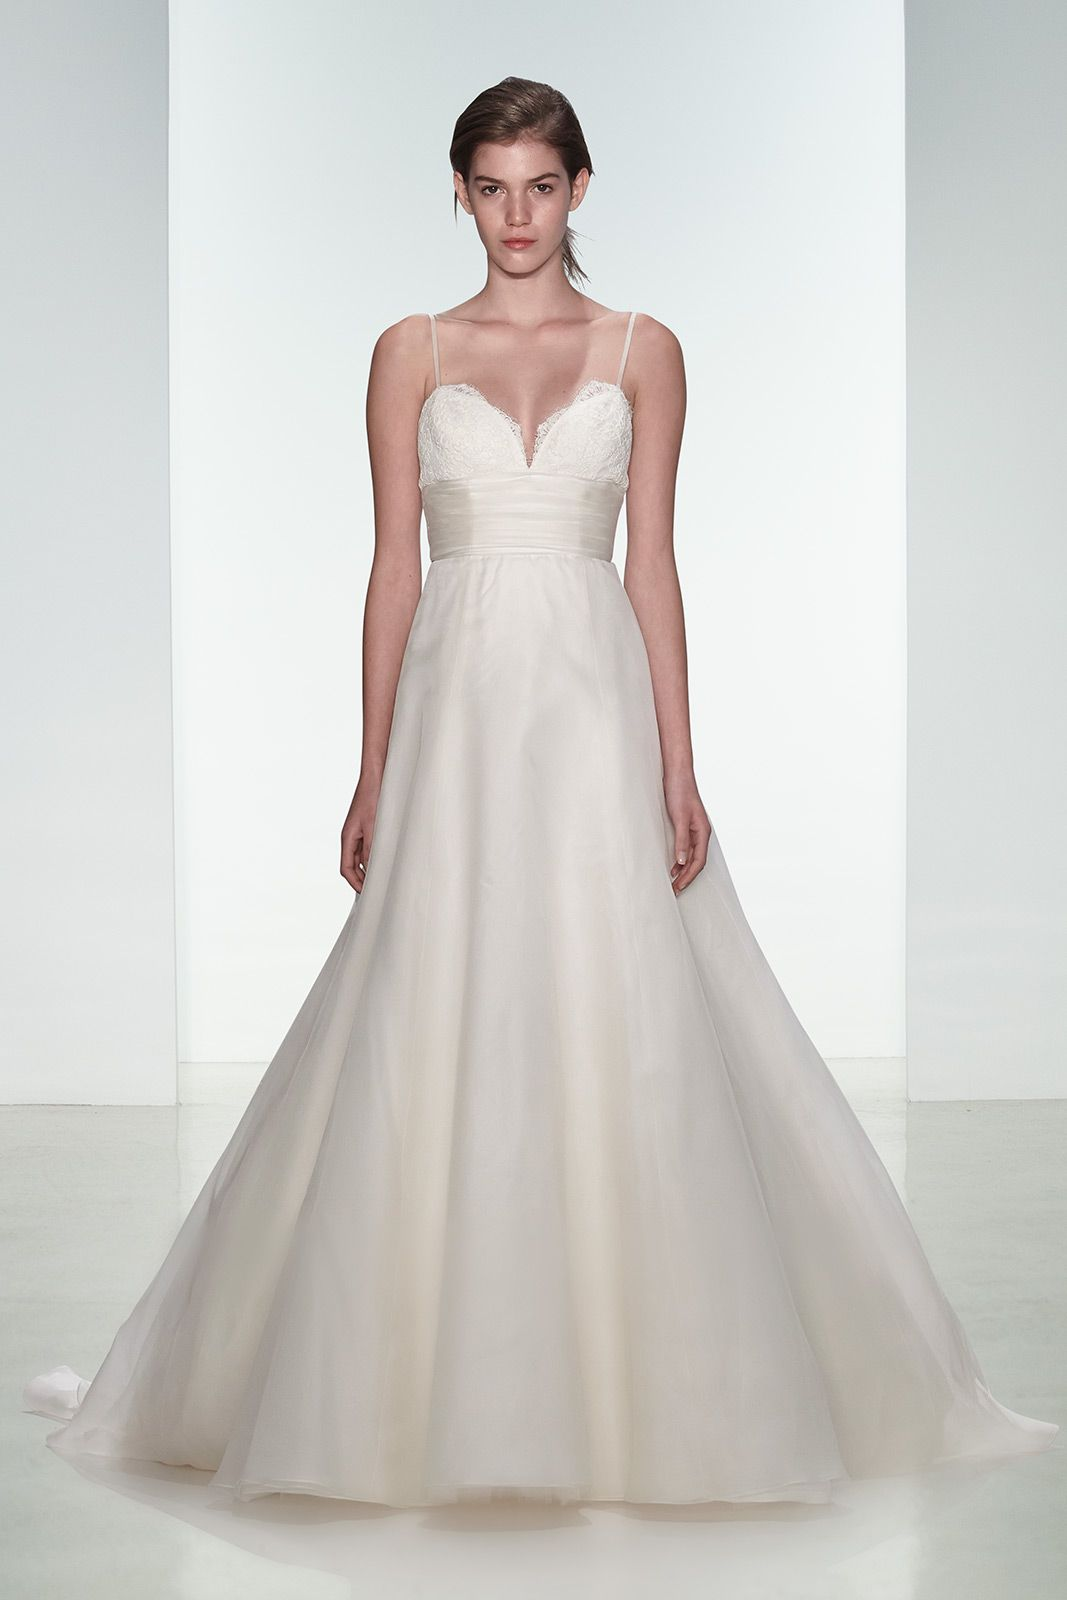 Gracie by amsale nouvelle available at carrie karibo bridal www nouvelle amsale gracie i do bridal couture baton rouge ombrellifo Image collections